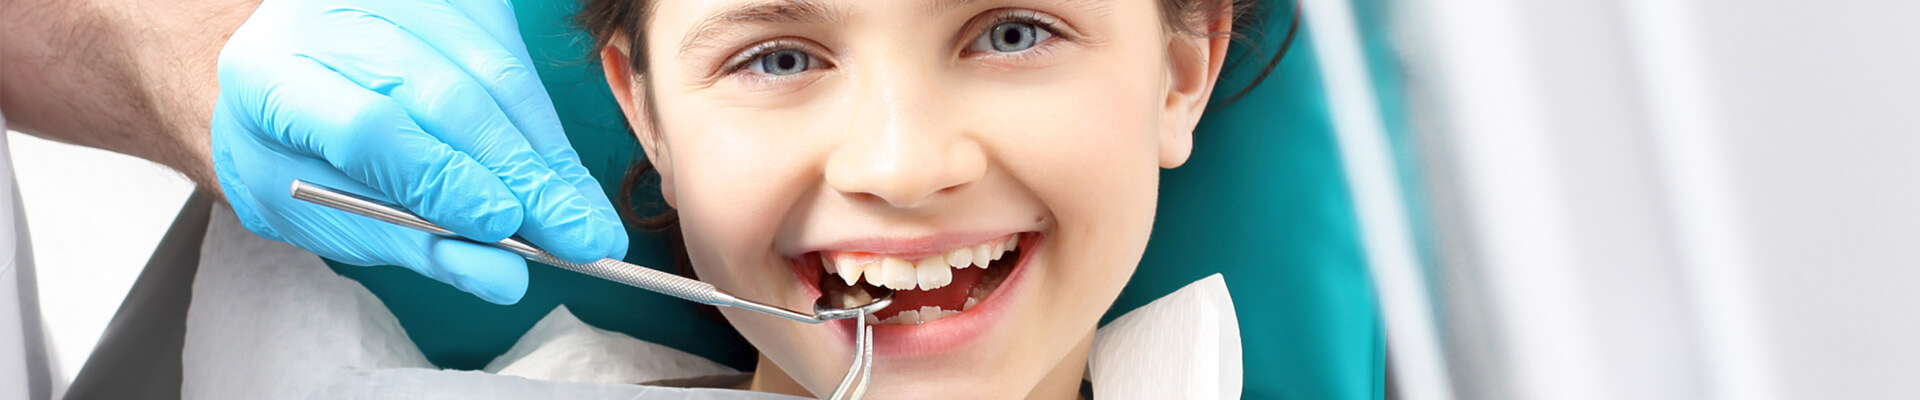 Child in the dental chair receiving dental treatment